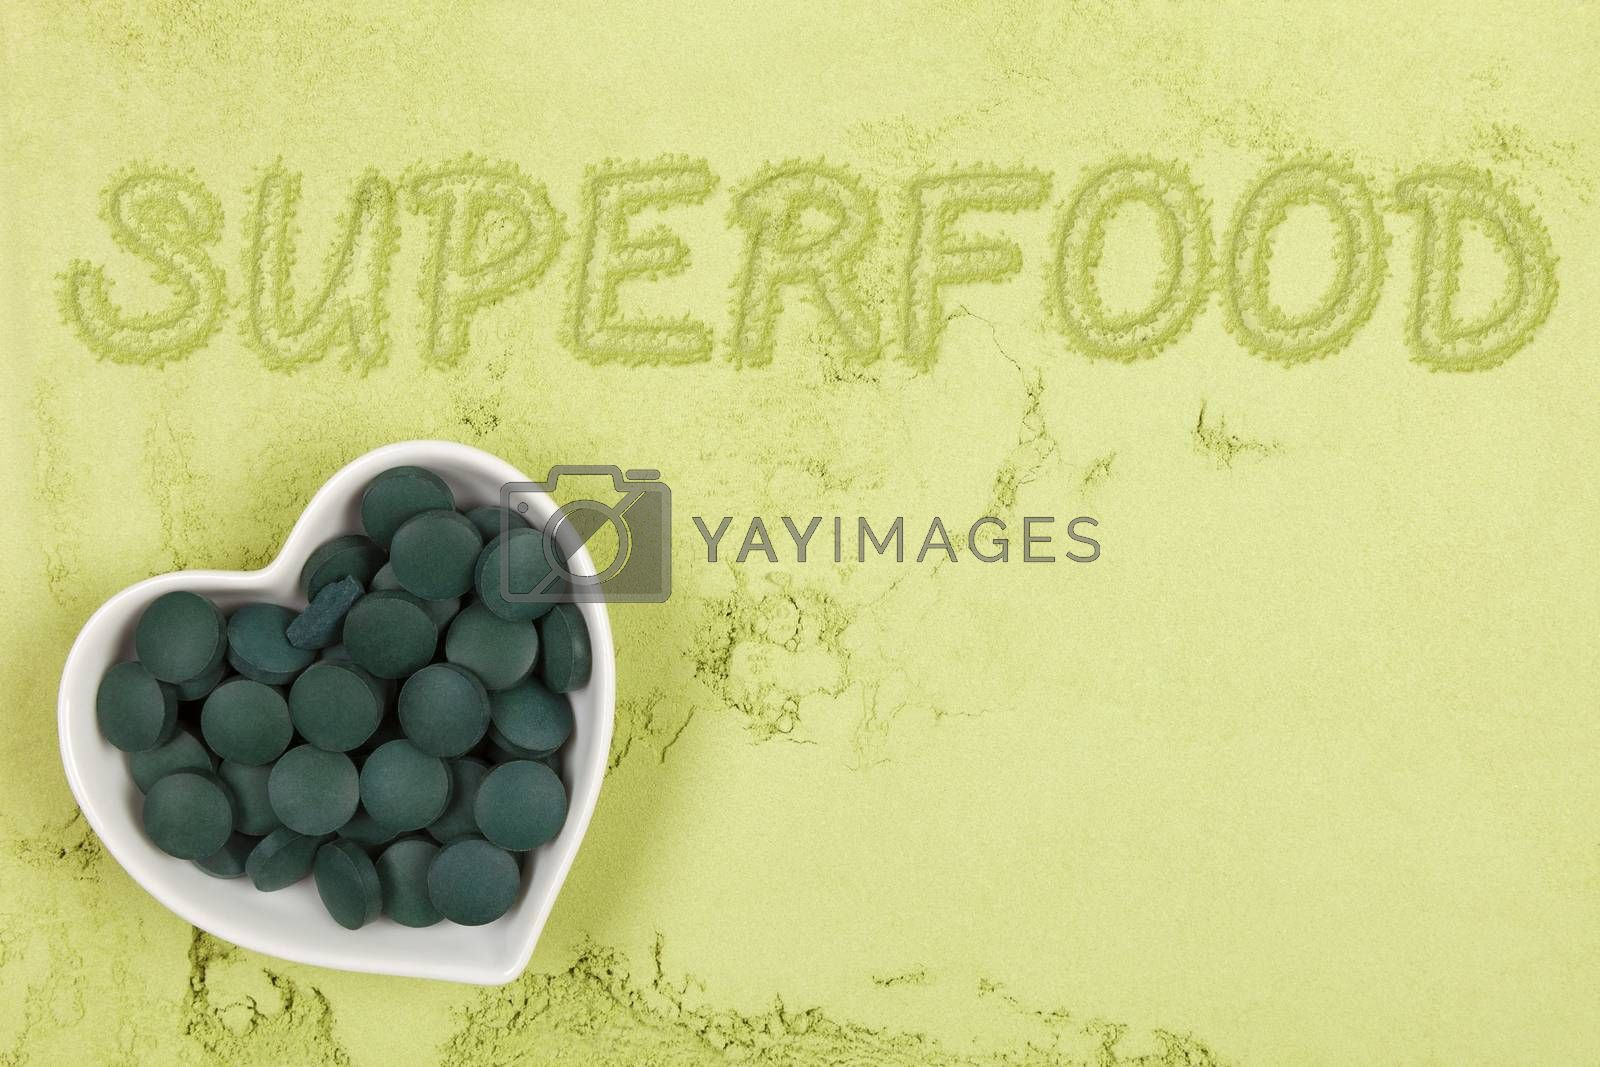 Green food supplement. Word superfood written in green ground powder, top view. Healthy lifestyle.